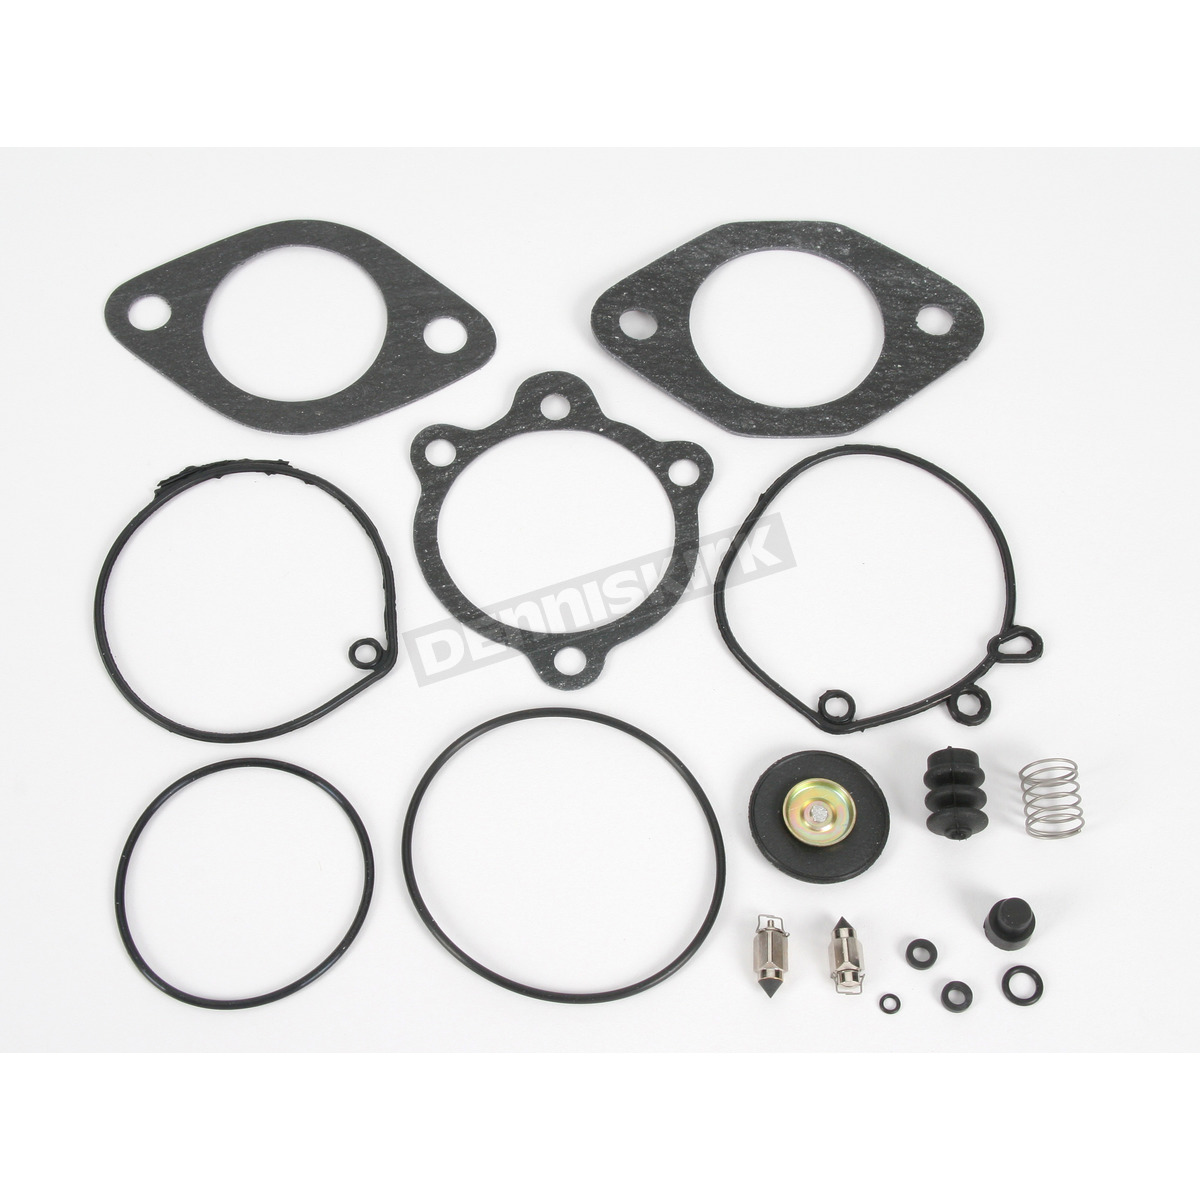 Carb Rebuild Kit for Standard Keihin - 20706-PB